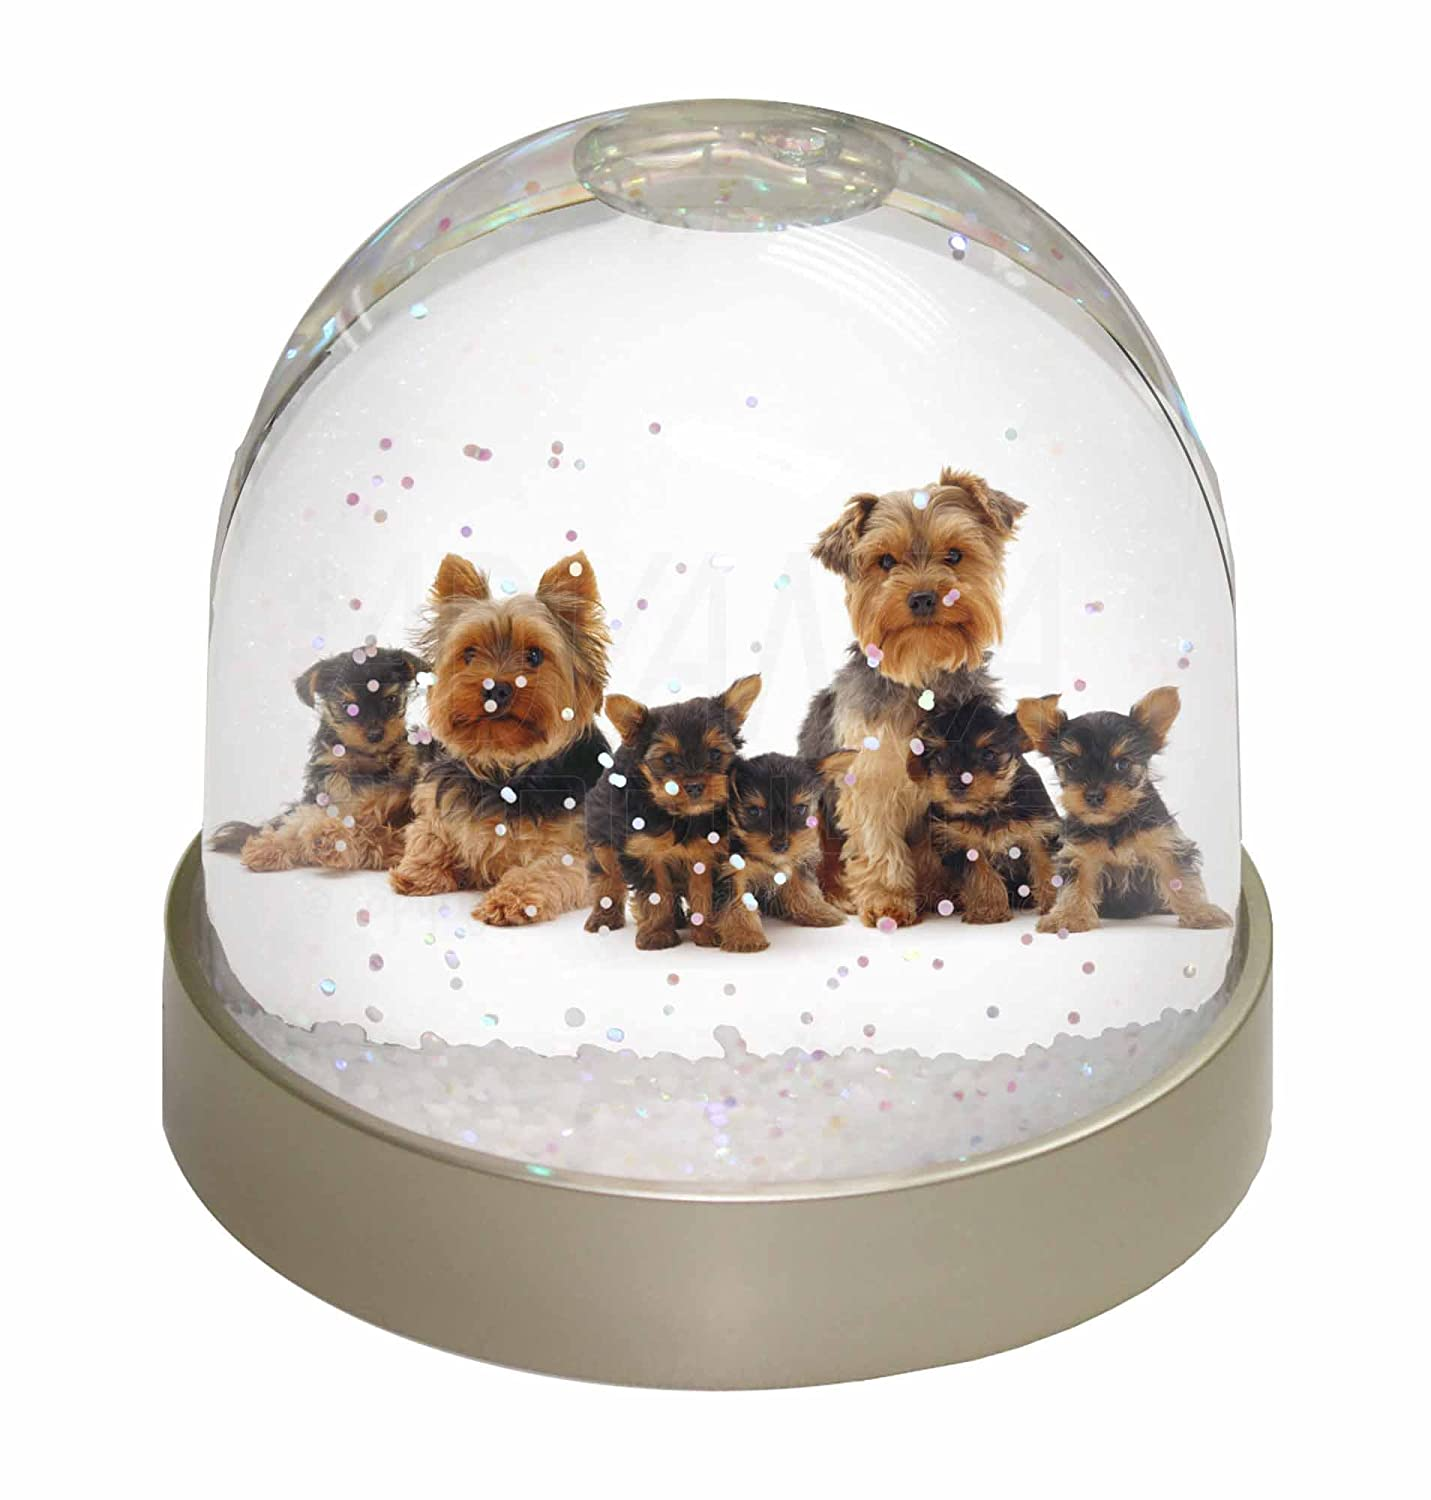 Advanta Yorkshire Terrier Dogs Photo Snow Globe Waterball Stocking Filler Gift, Multi-Colour, 9.2 x 9.2 x 8 cm Advanta Products AD-Y11GL